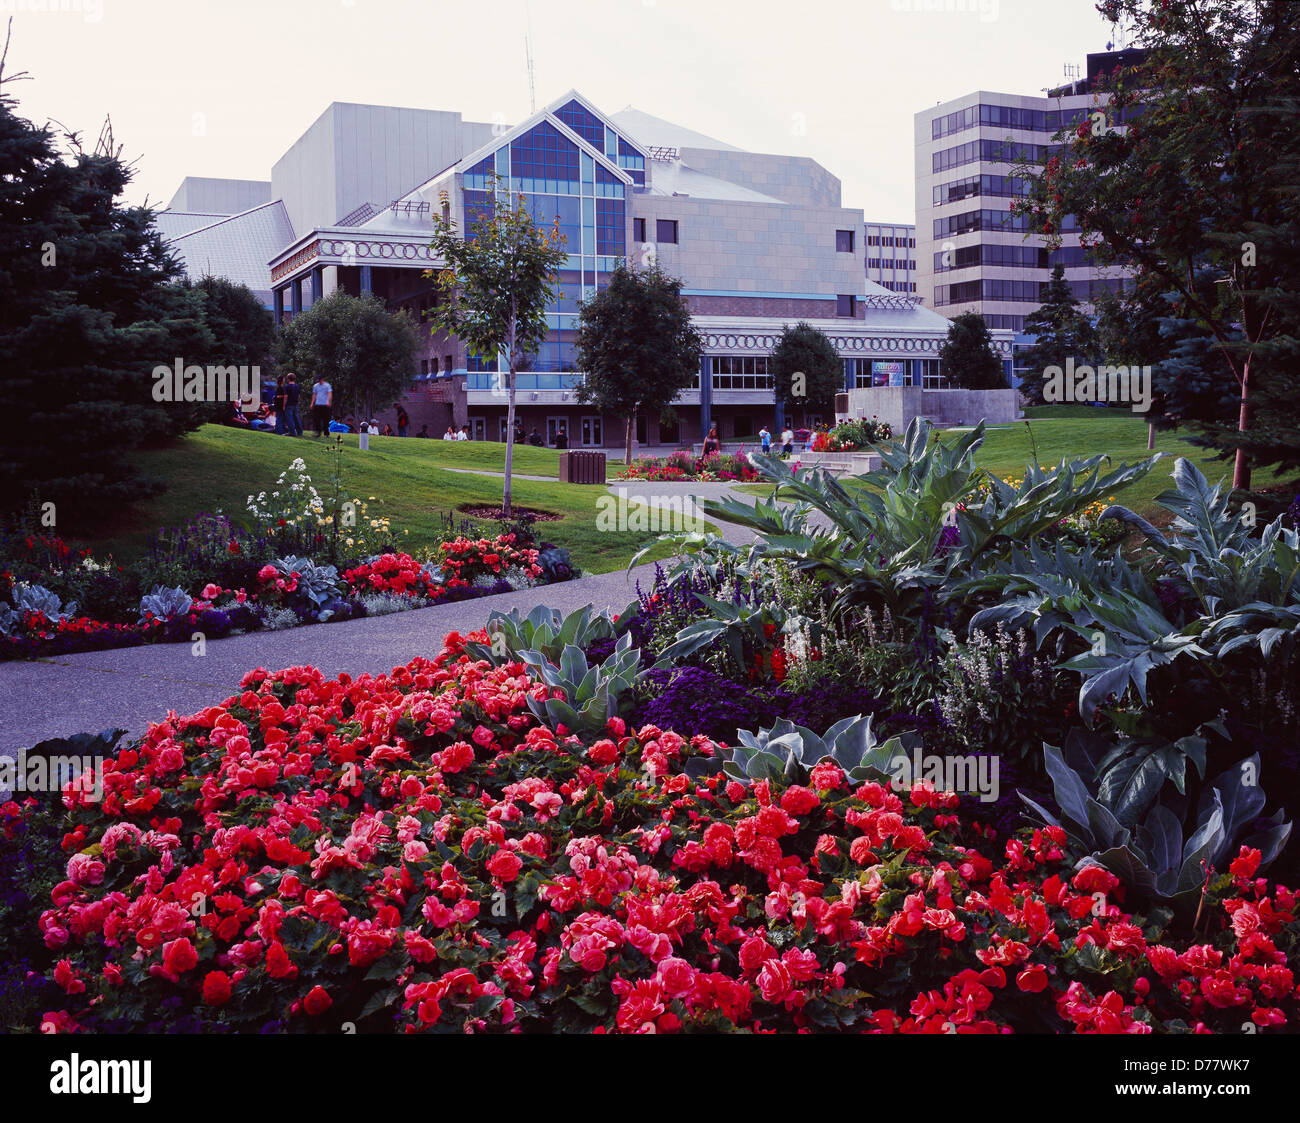 Gardens in Town Square Park Performing Arts Center beyond downtown Anchorage Alaska. - Stock Image